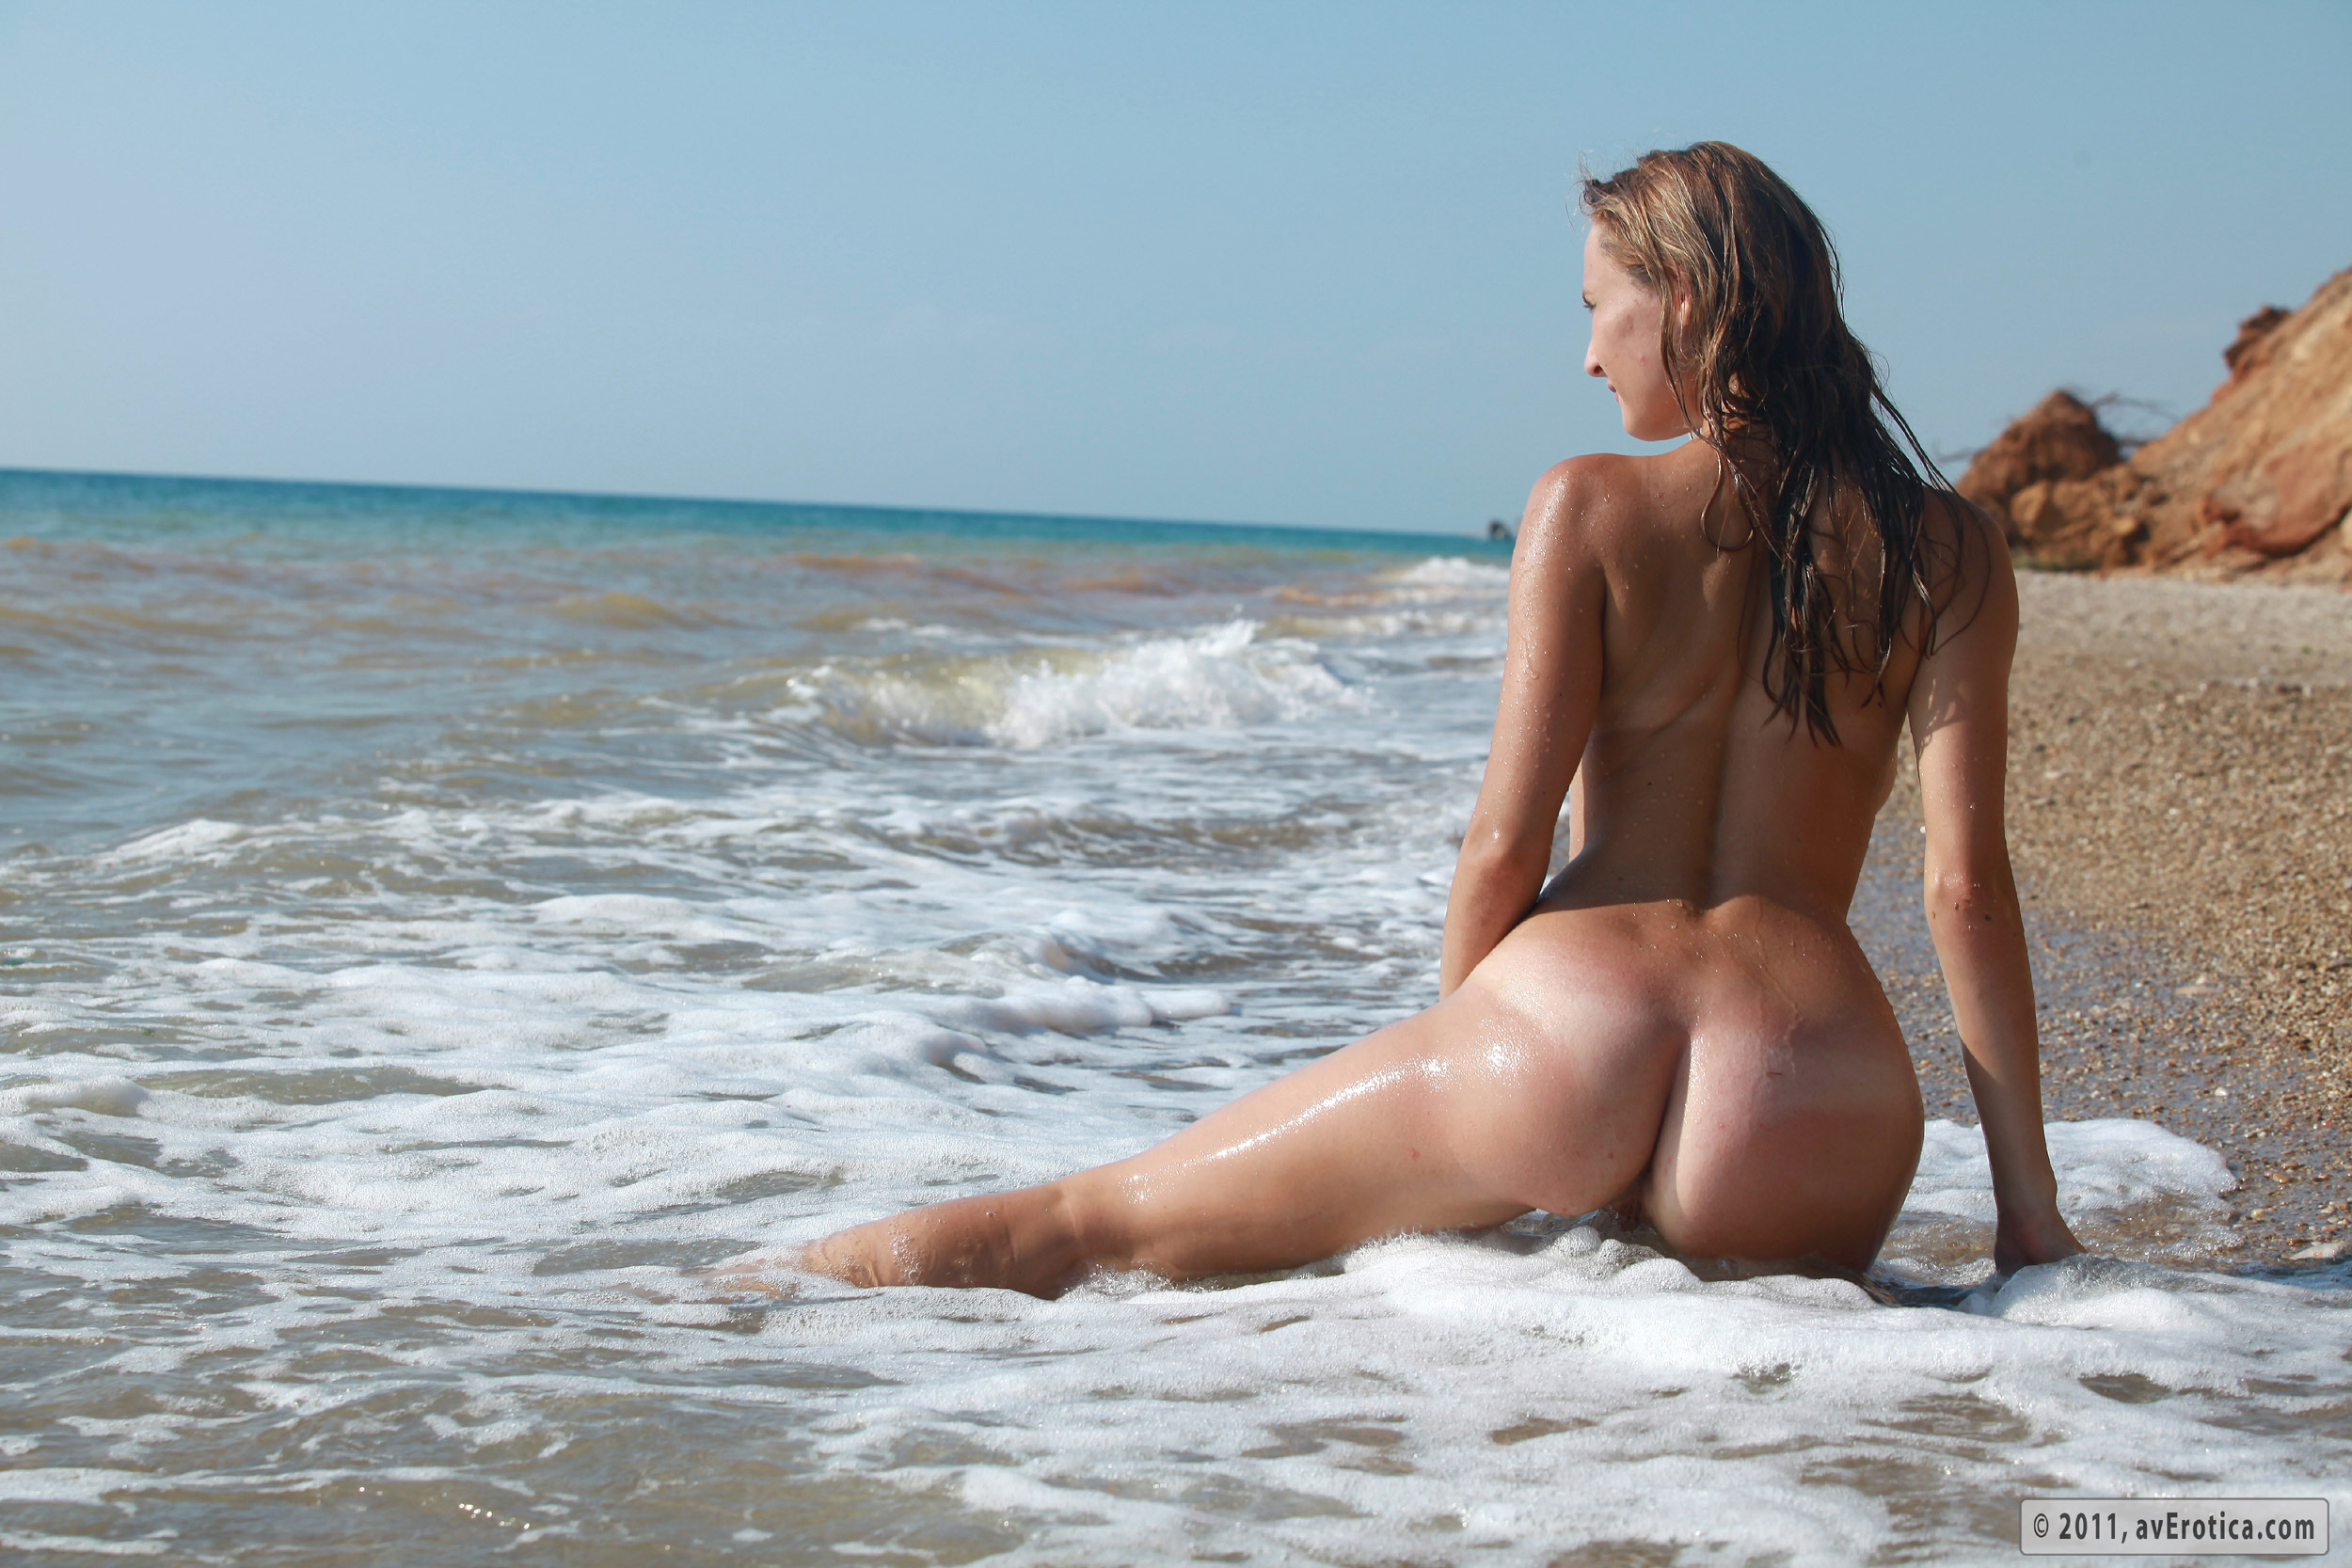 Images of Erotic Beach Photos - Amateur Adult Gallery